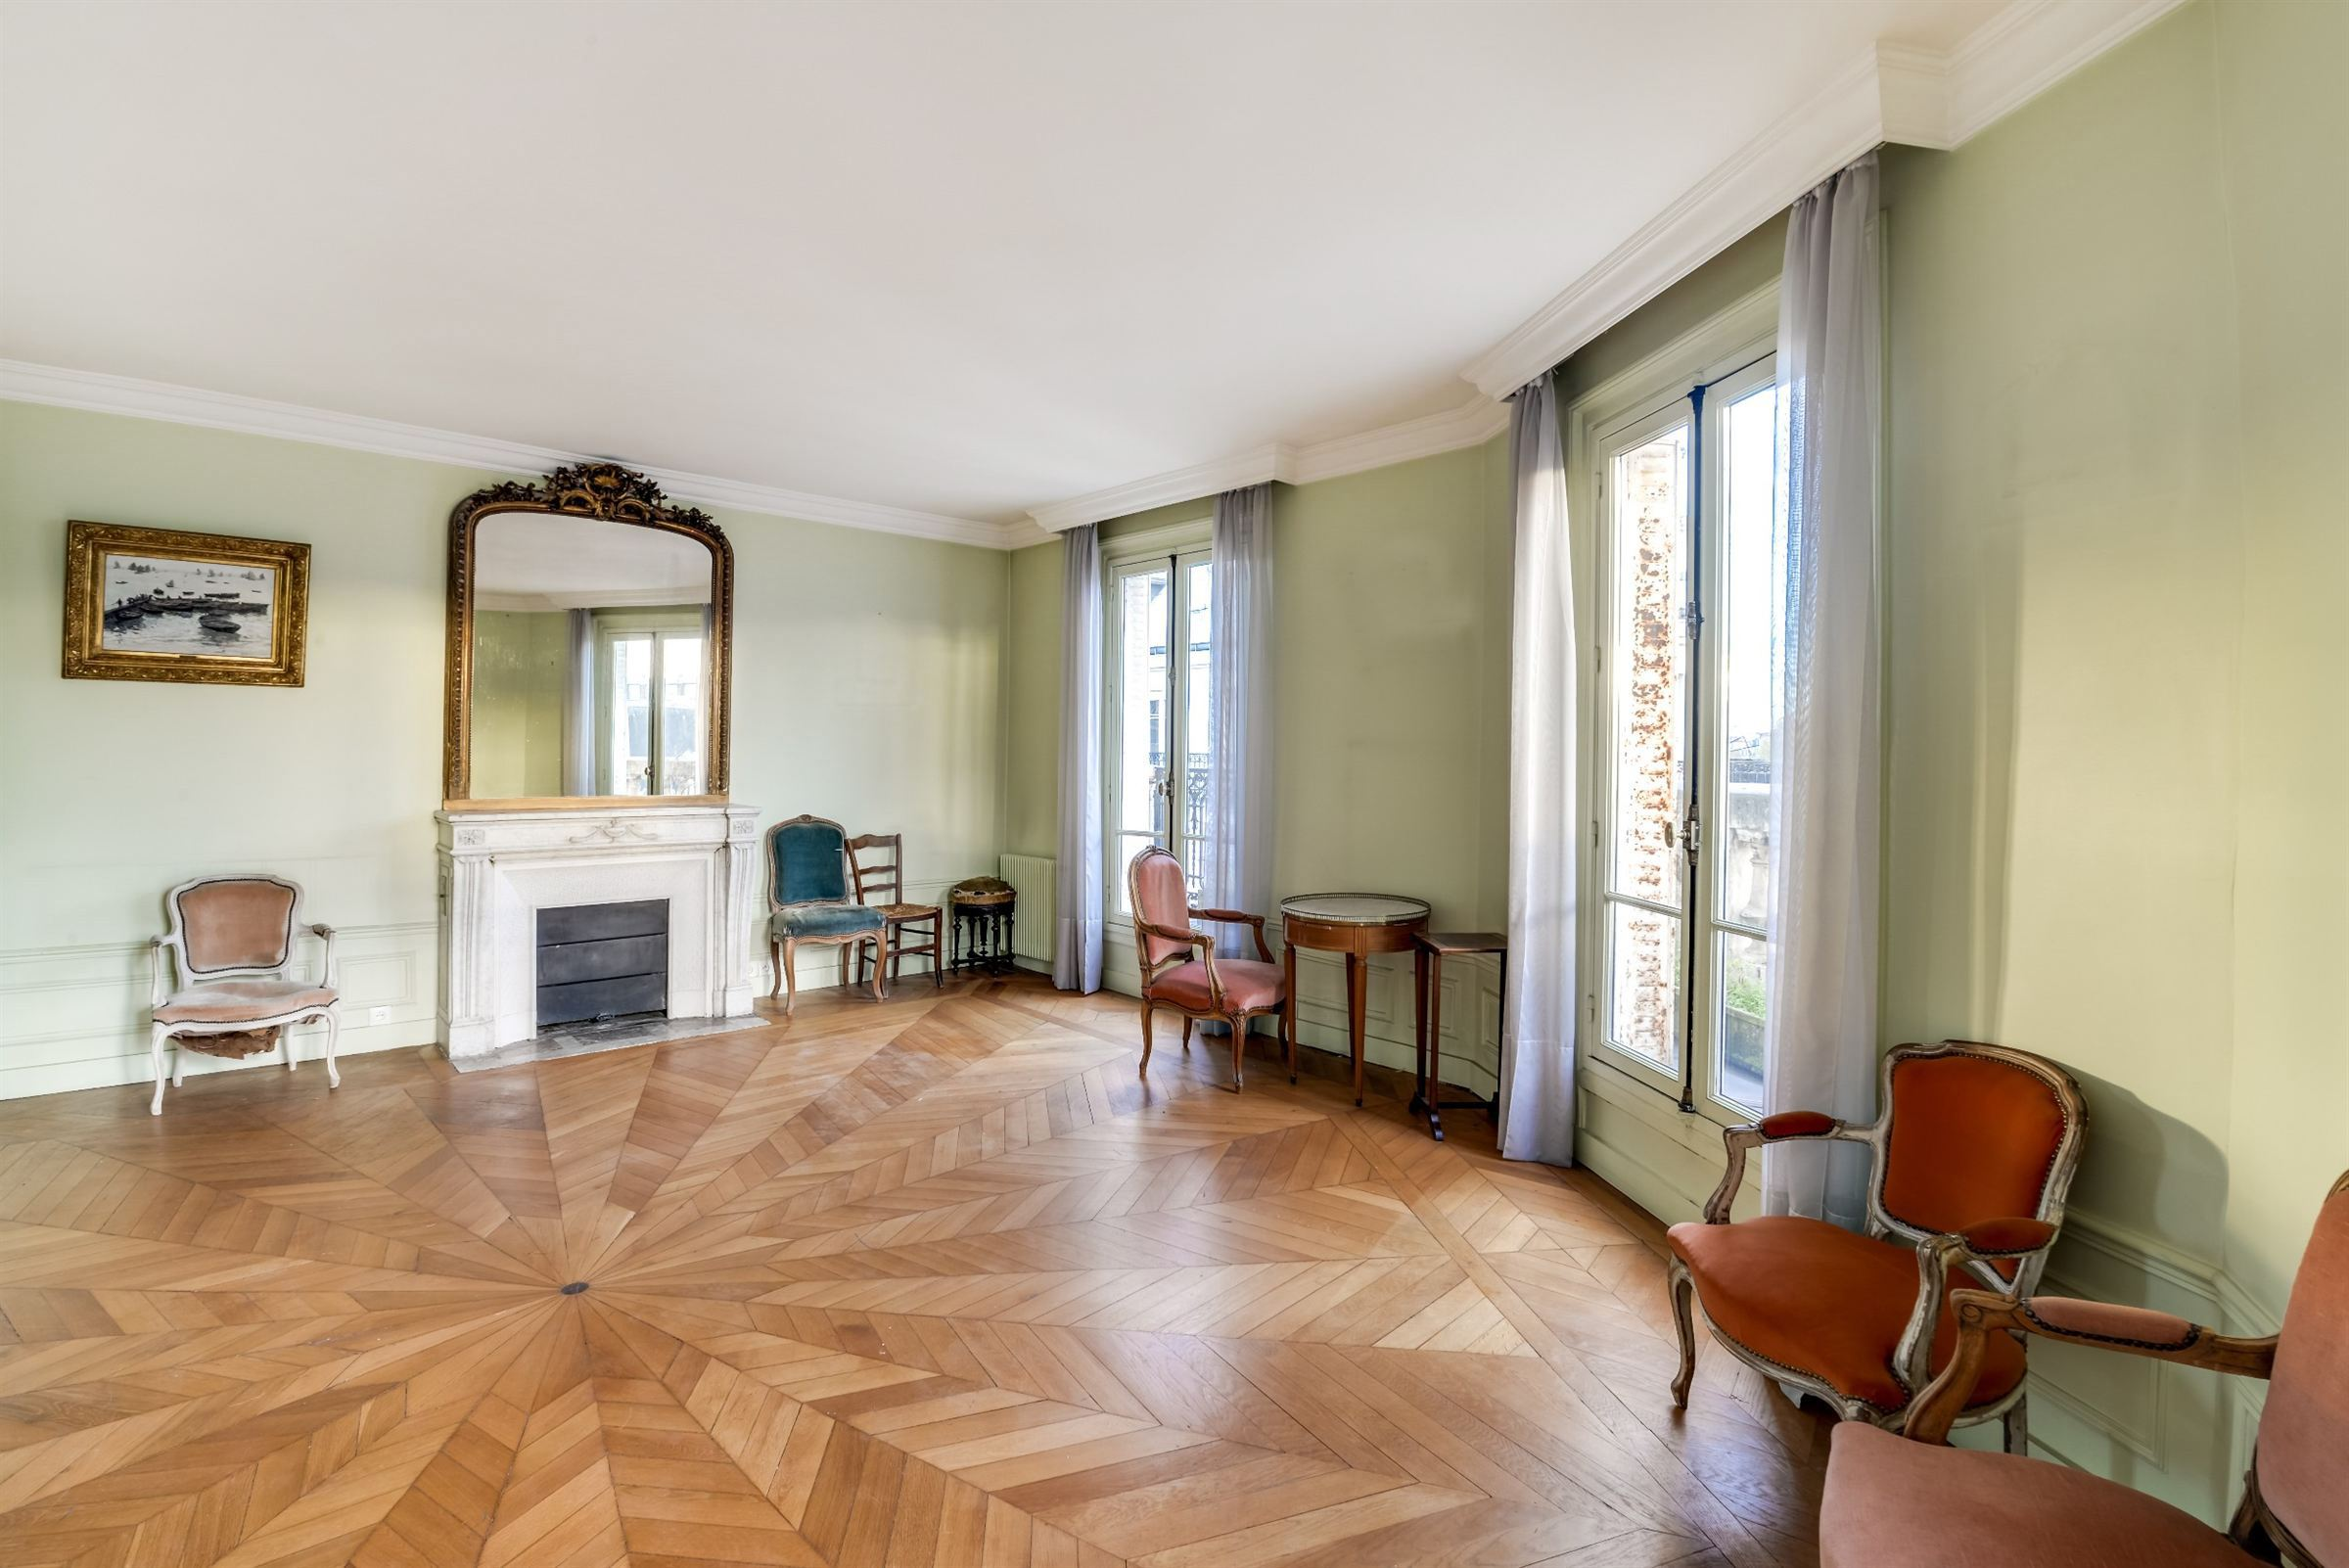 sales property at Paris 6 - St-Germain. Apartment 179 sq.m.. Balcony of 25m, Notre-Dame view